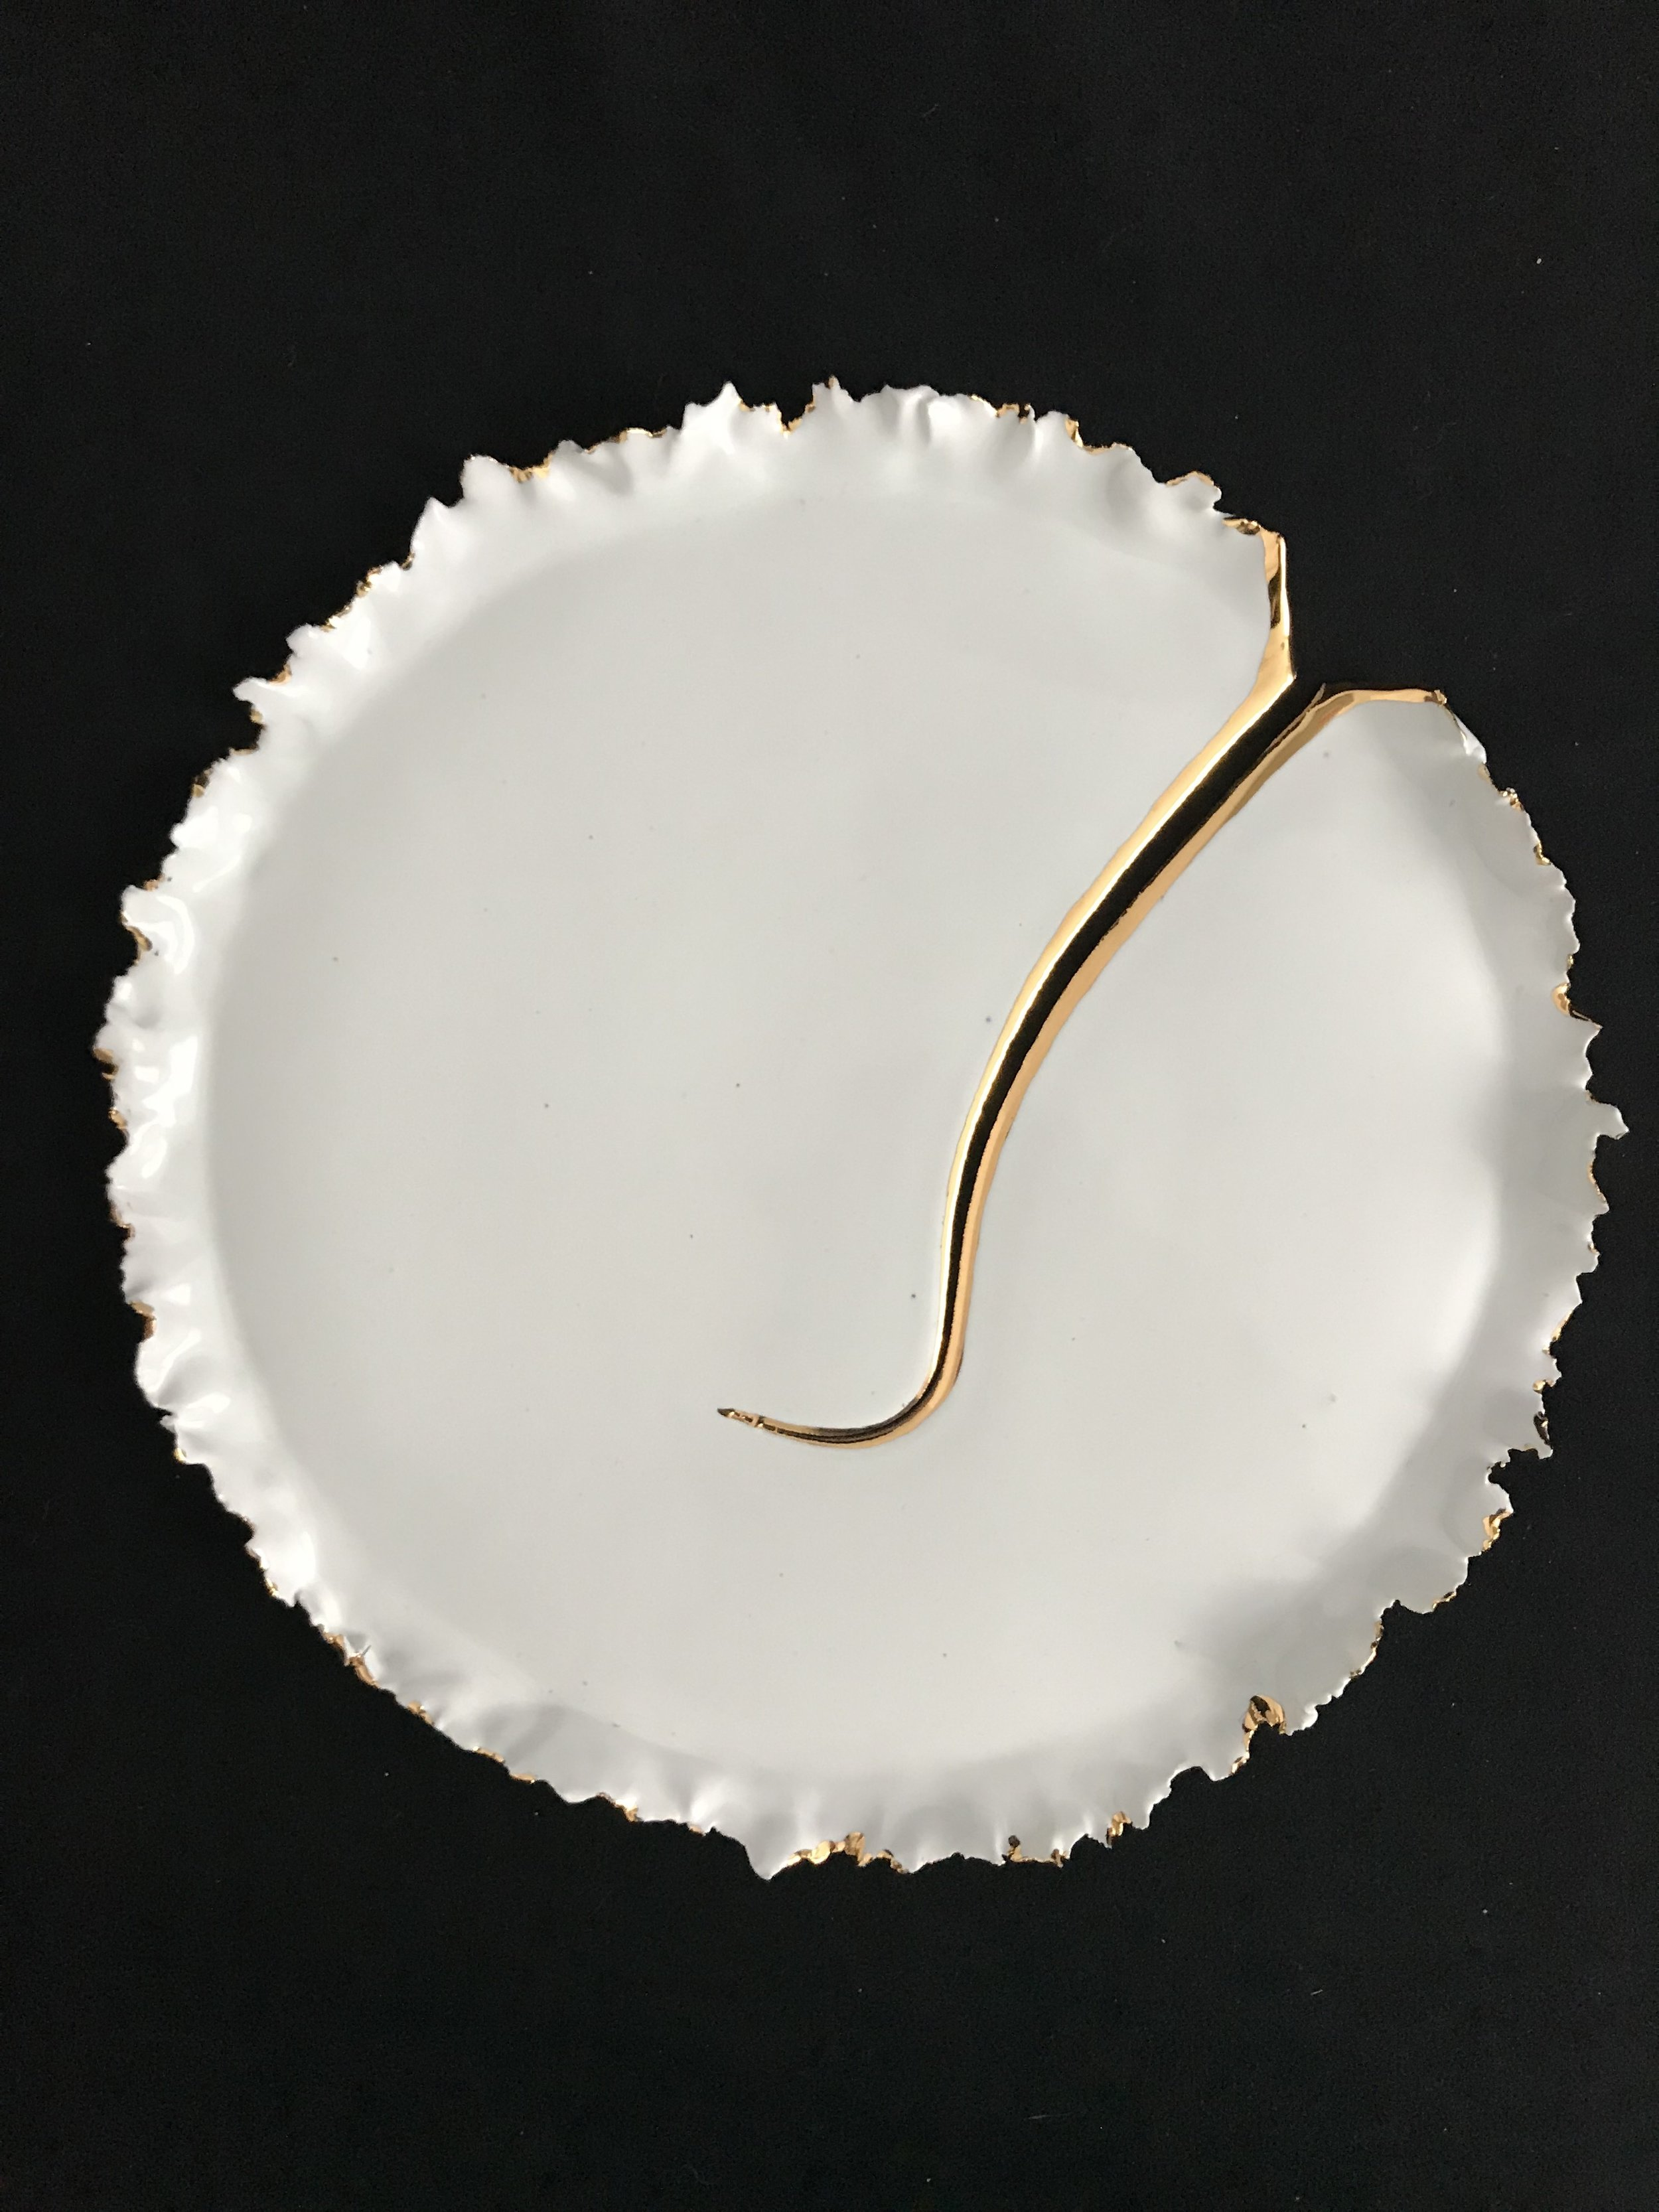 "Victoria Lotus Leaf: How the Light Gets In (Large Crack),  glazed porcelain with gold on cracked area and parts of rim, 1""x12.75""diameter, 2018  SOLD"